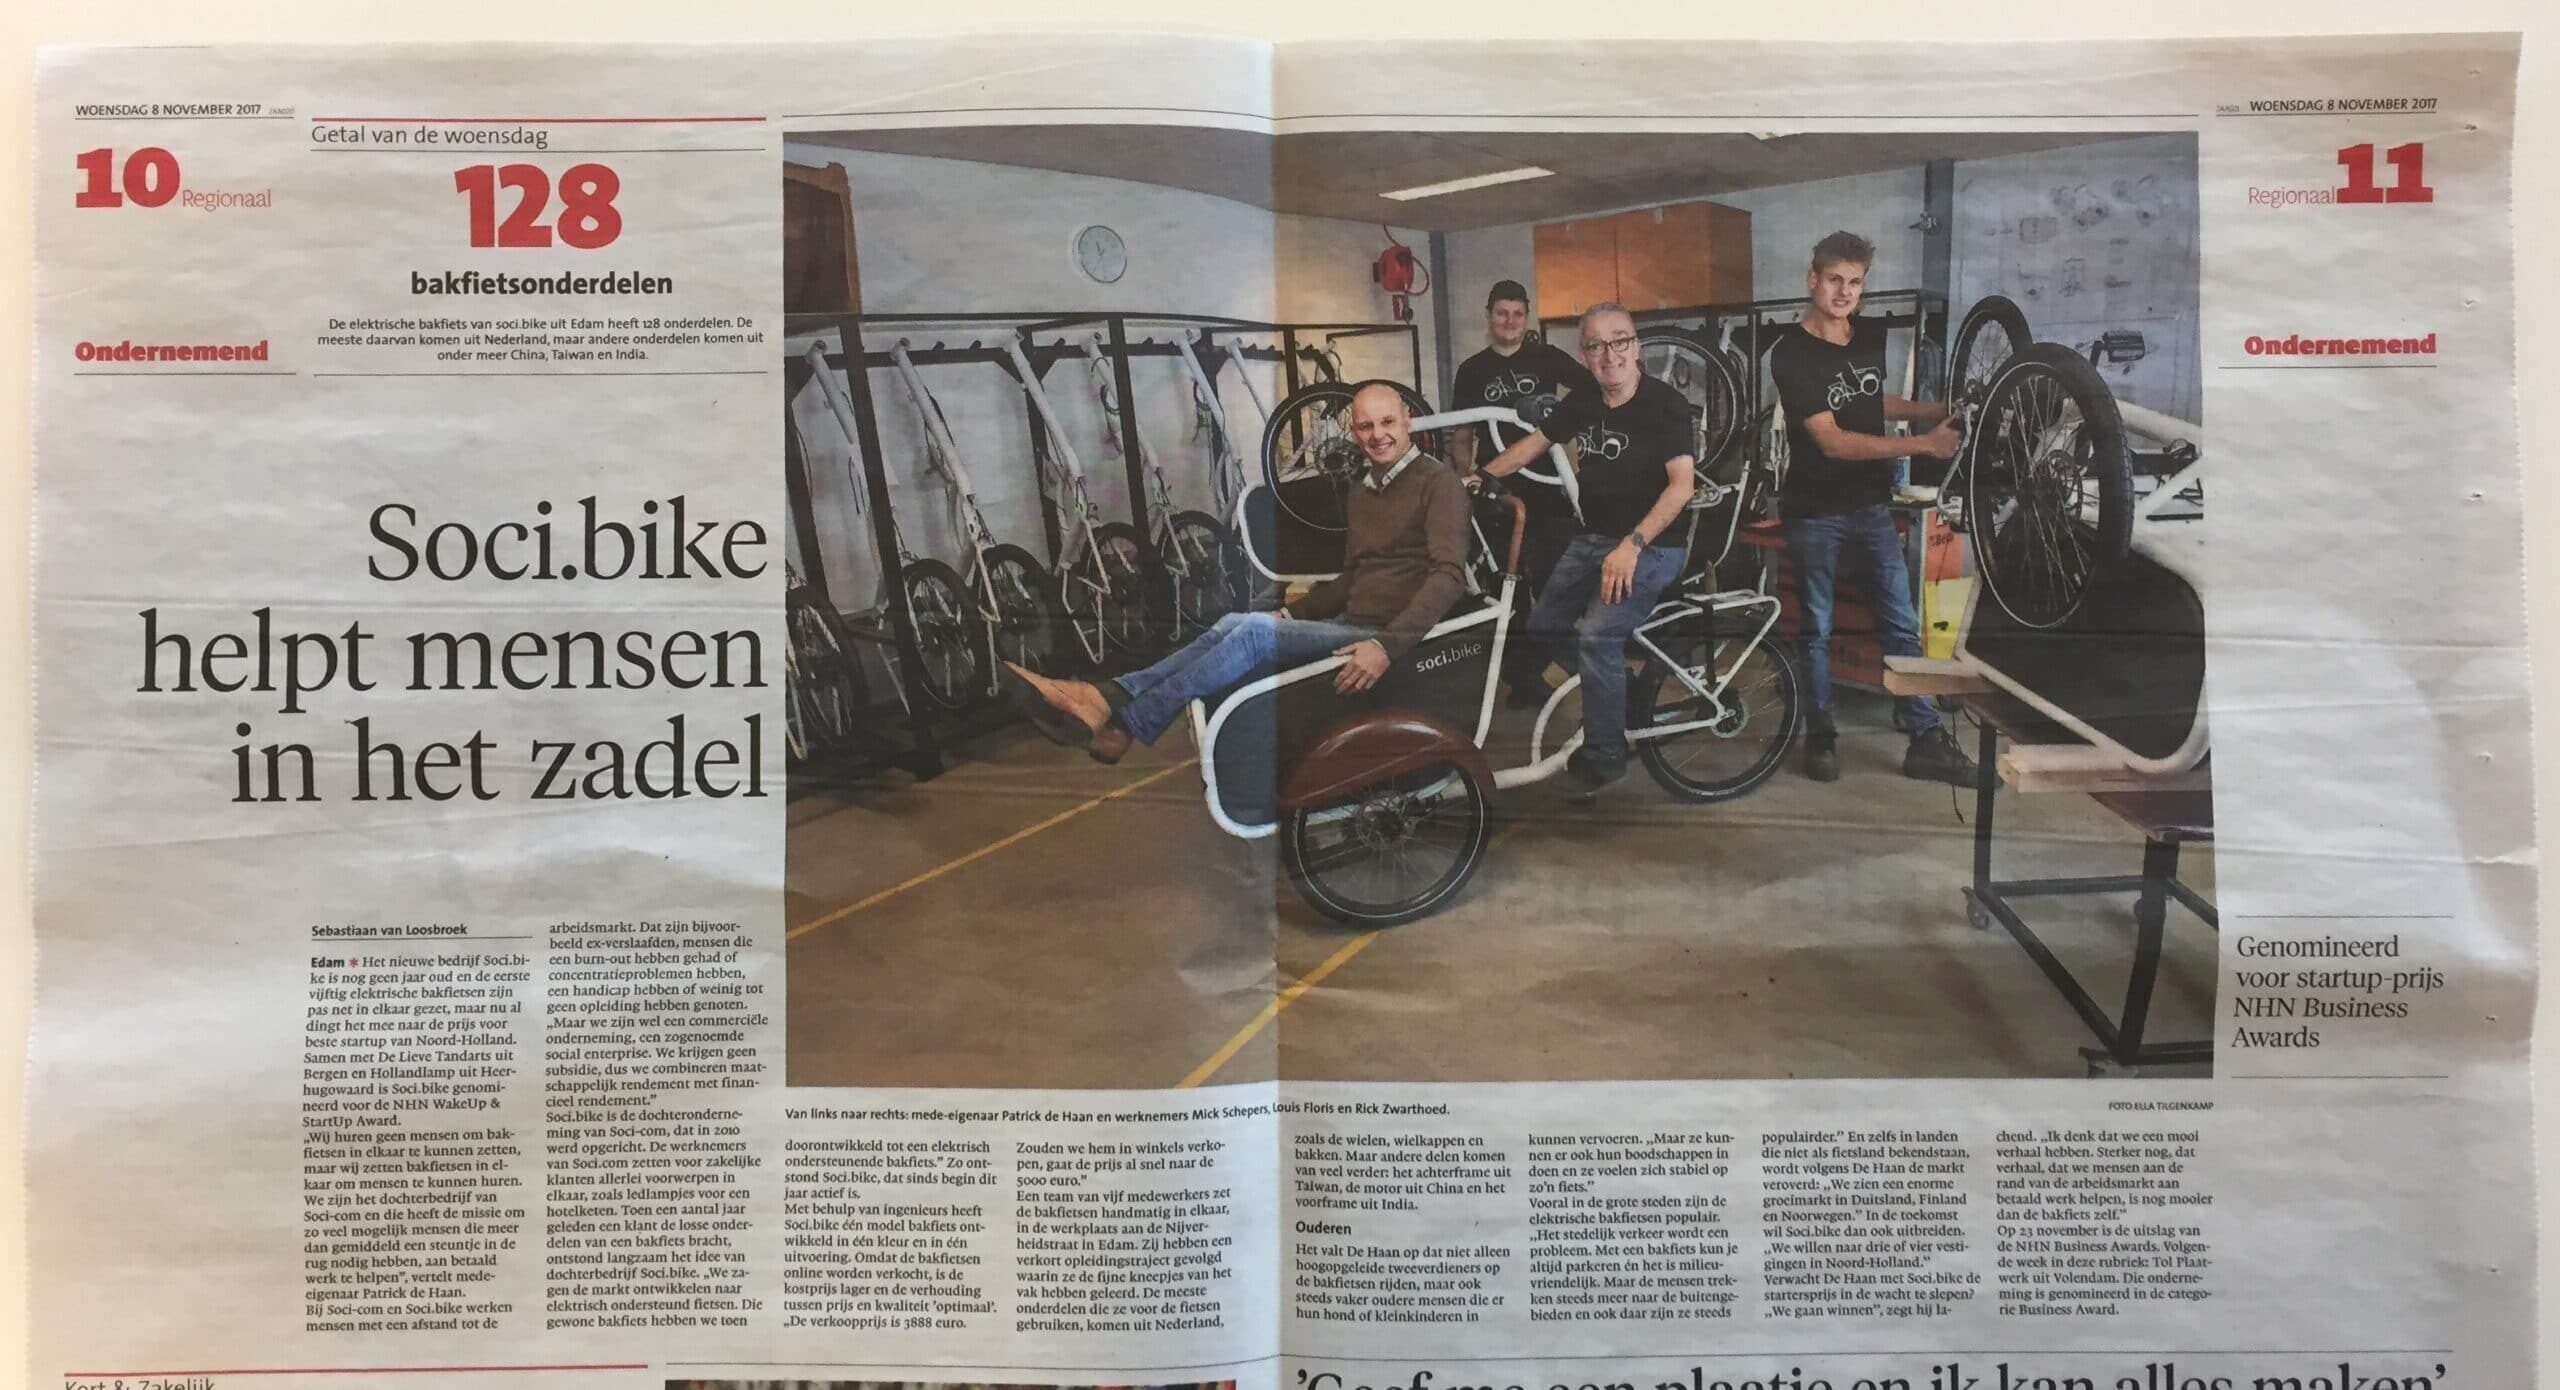 soci.bike in het Noord-Hollands Dagblad